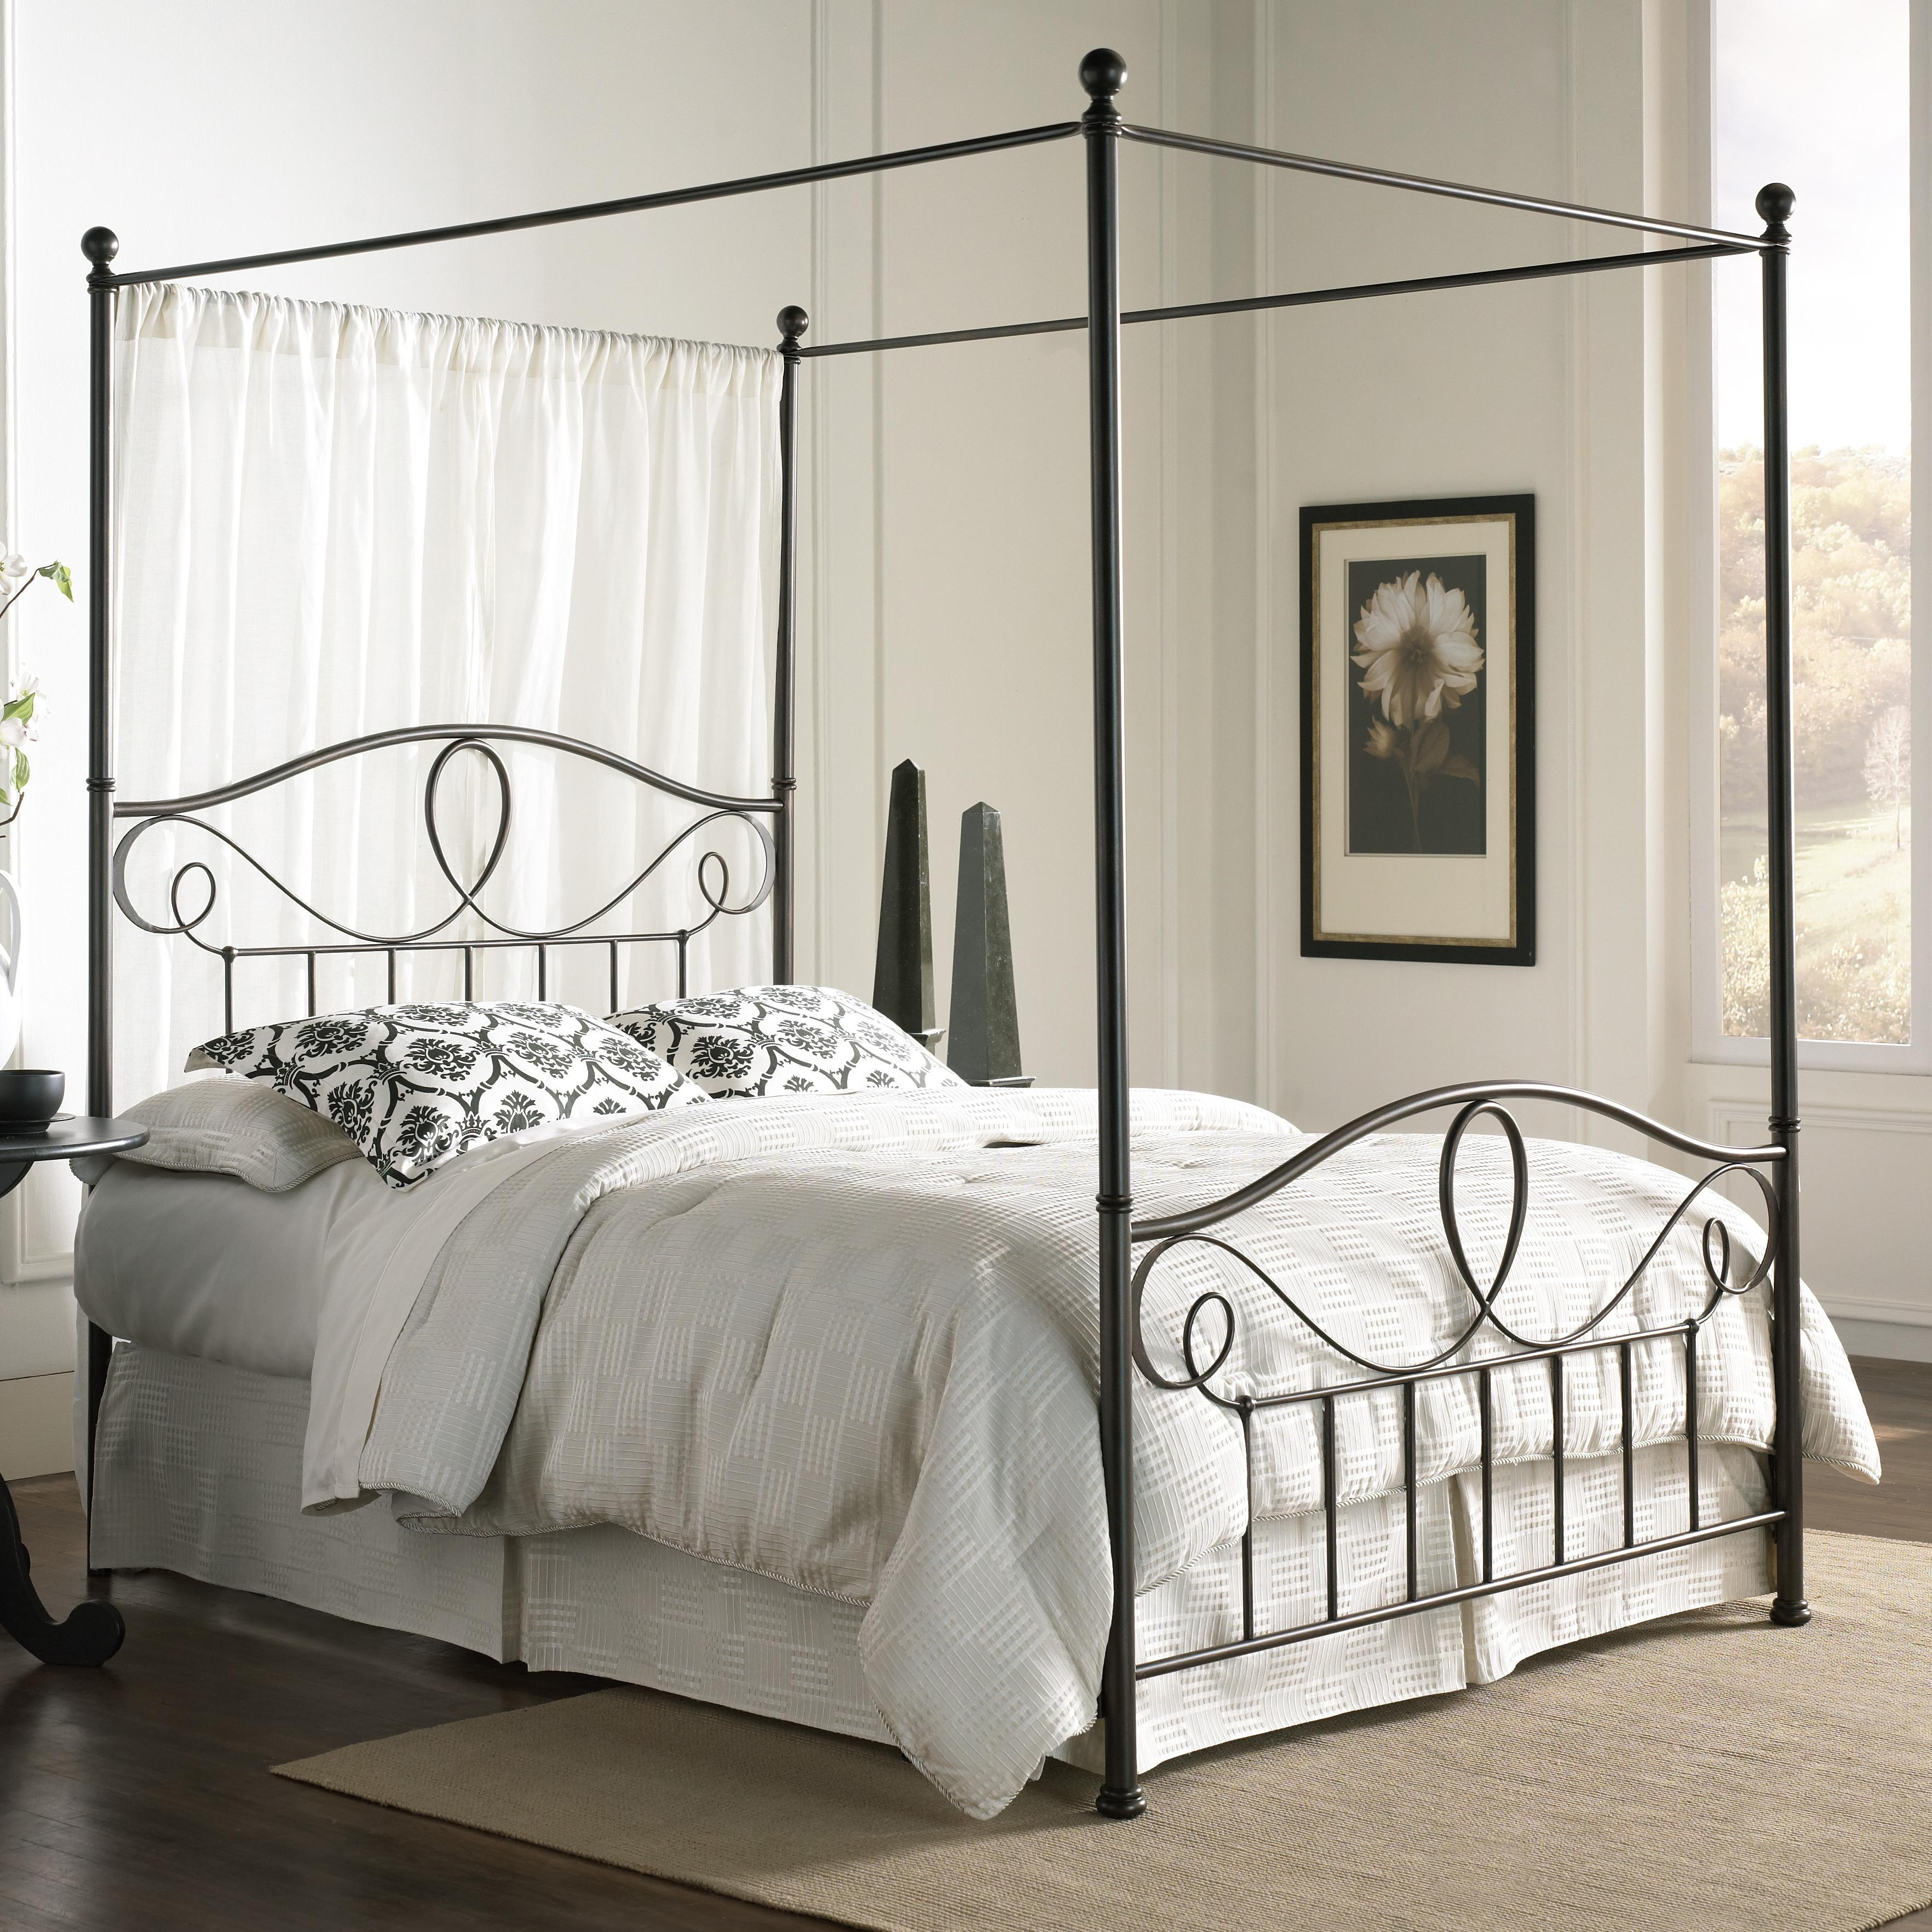 Fashion Bed Group Canopy Beds California King Sylvania